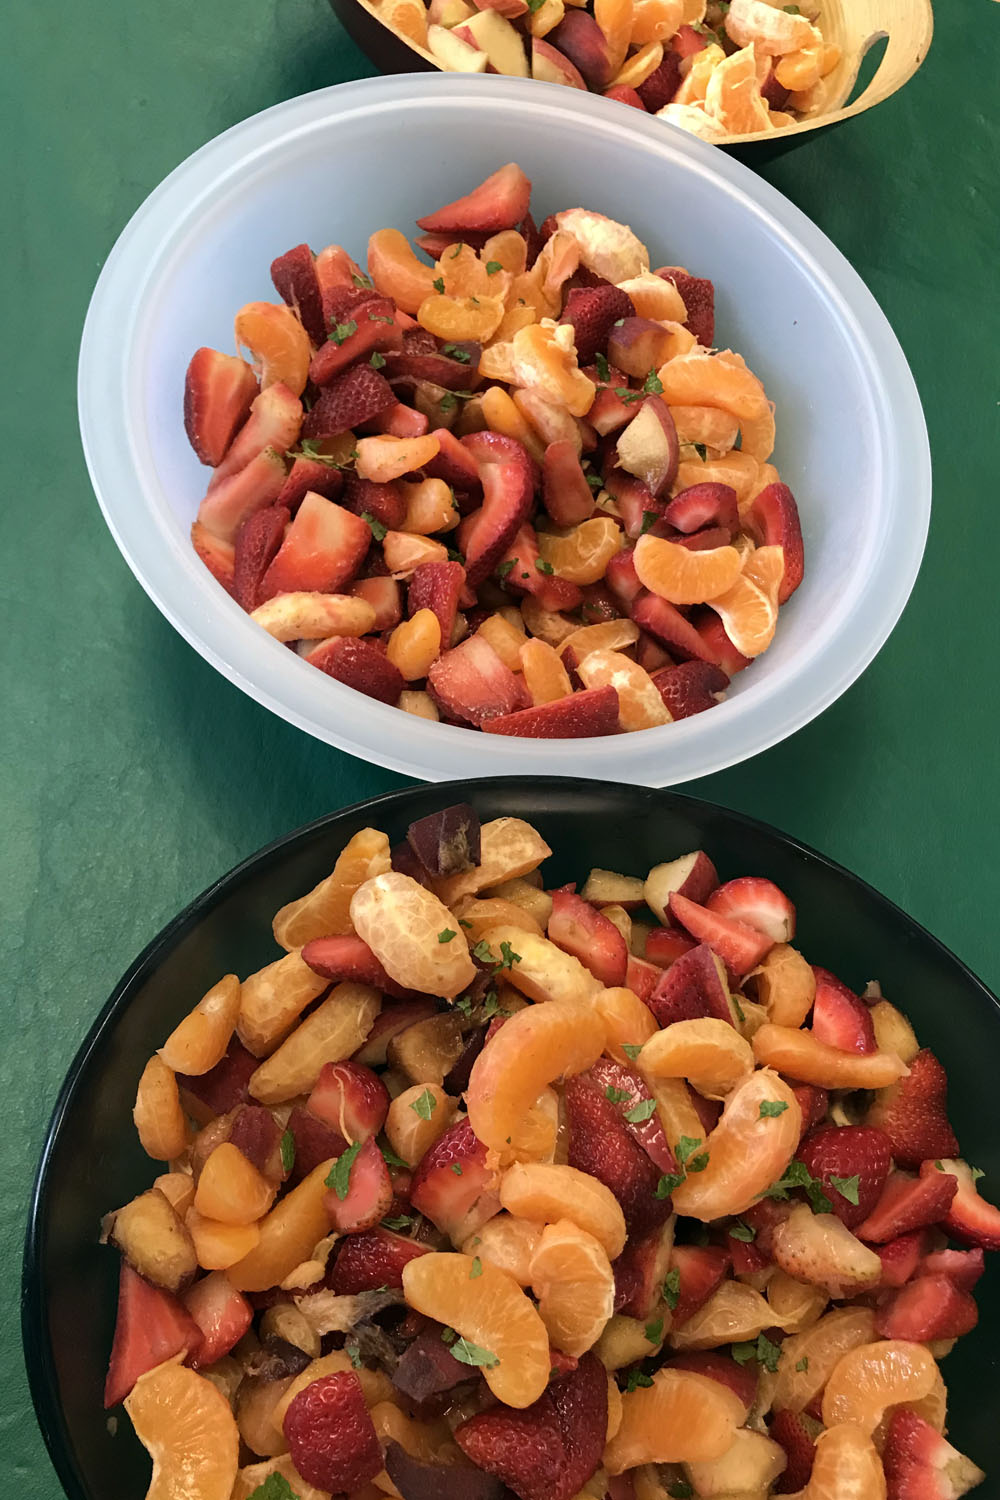 The finished fruit salad was beautiful to behold, with lemon balm from the HMCRA garden.